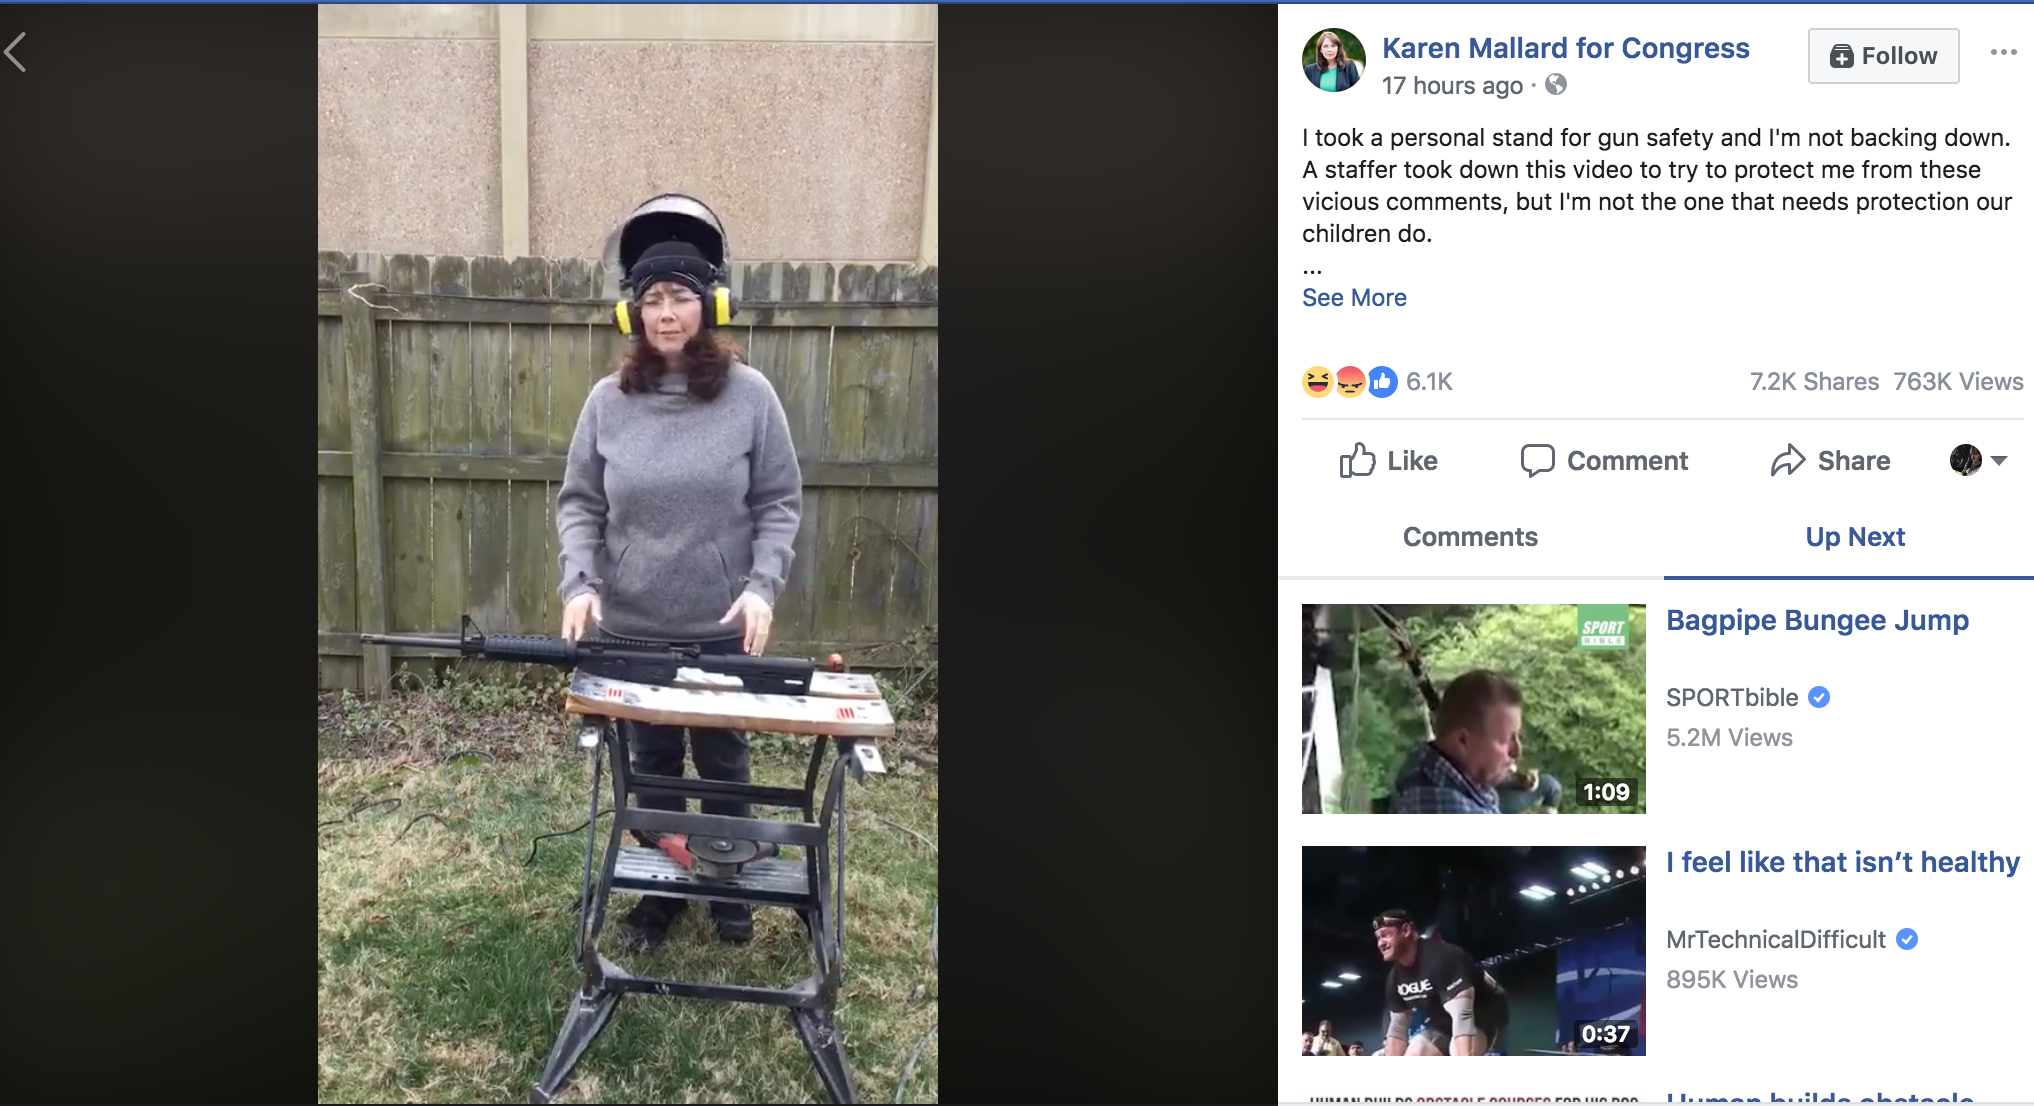 Virginia Candidate Cuts Up AR on Camera, Accused of Committing Felony